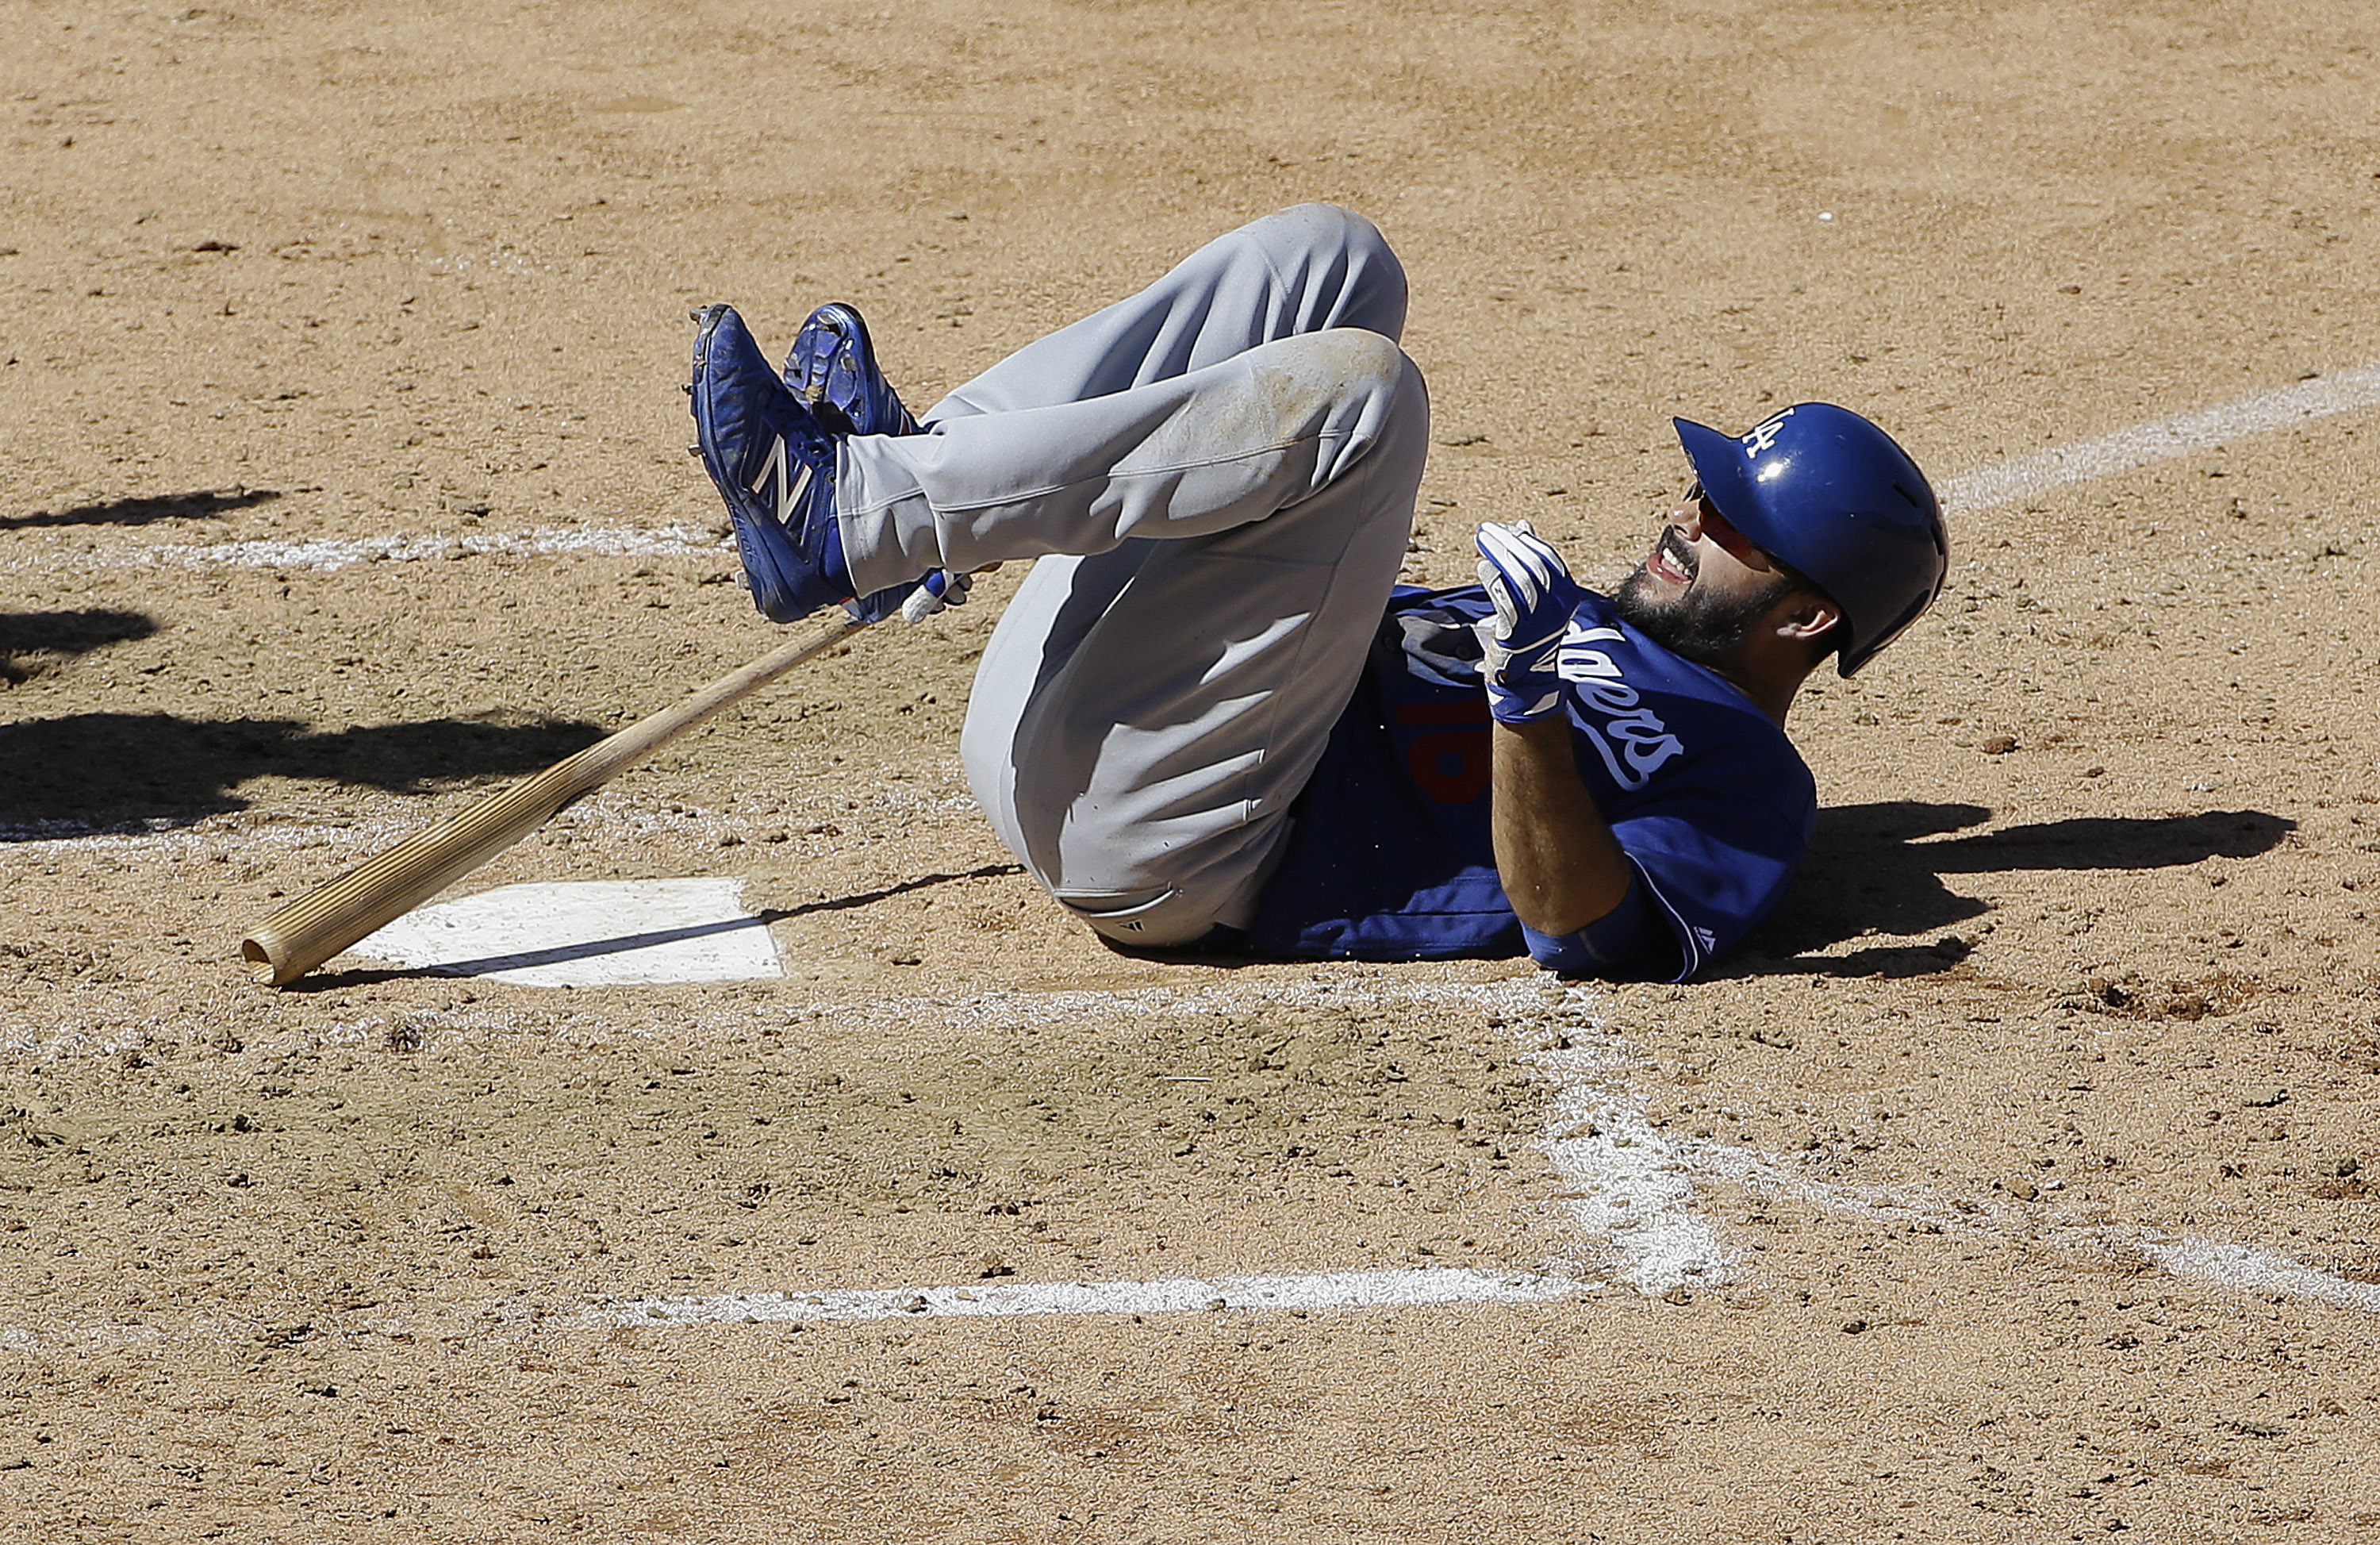 Los Angeles Dodgers' Andre Ethier rolls on the ground during the fourth inning of a spring training baseball game against the Arizona Diamondbacks in Scottsdale, Ariz., Friday, March 18, 2016. Ethier left the game after reaching first base on a walk. (AP